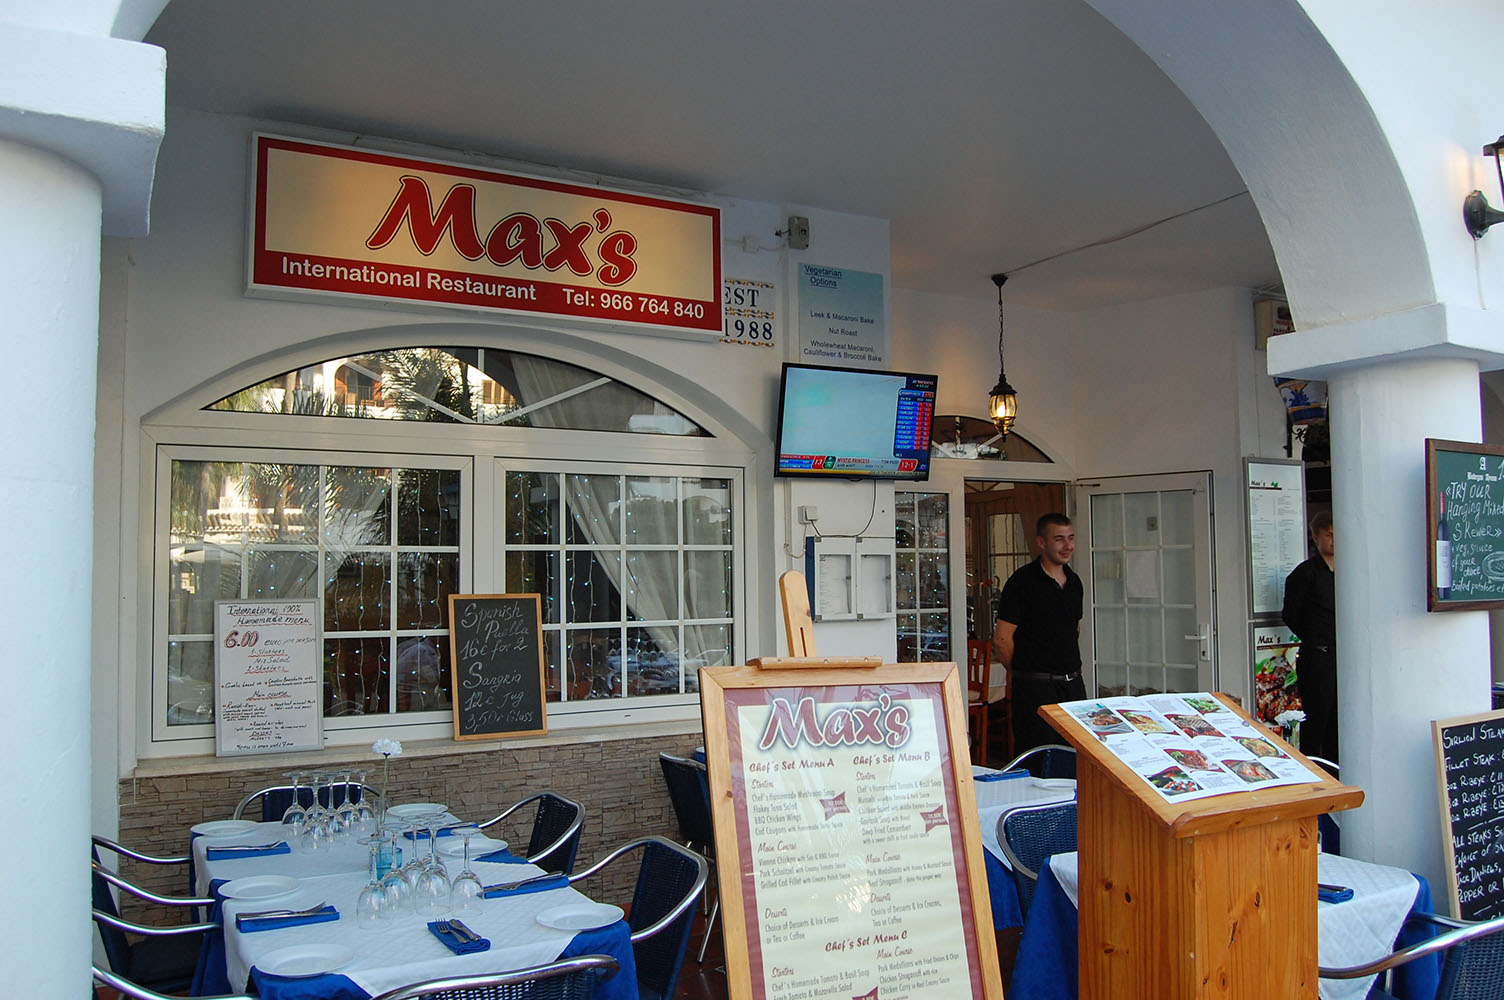 Max's International Restaurant on Villamartin Plaza